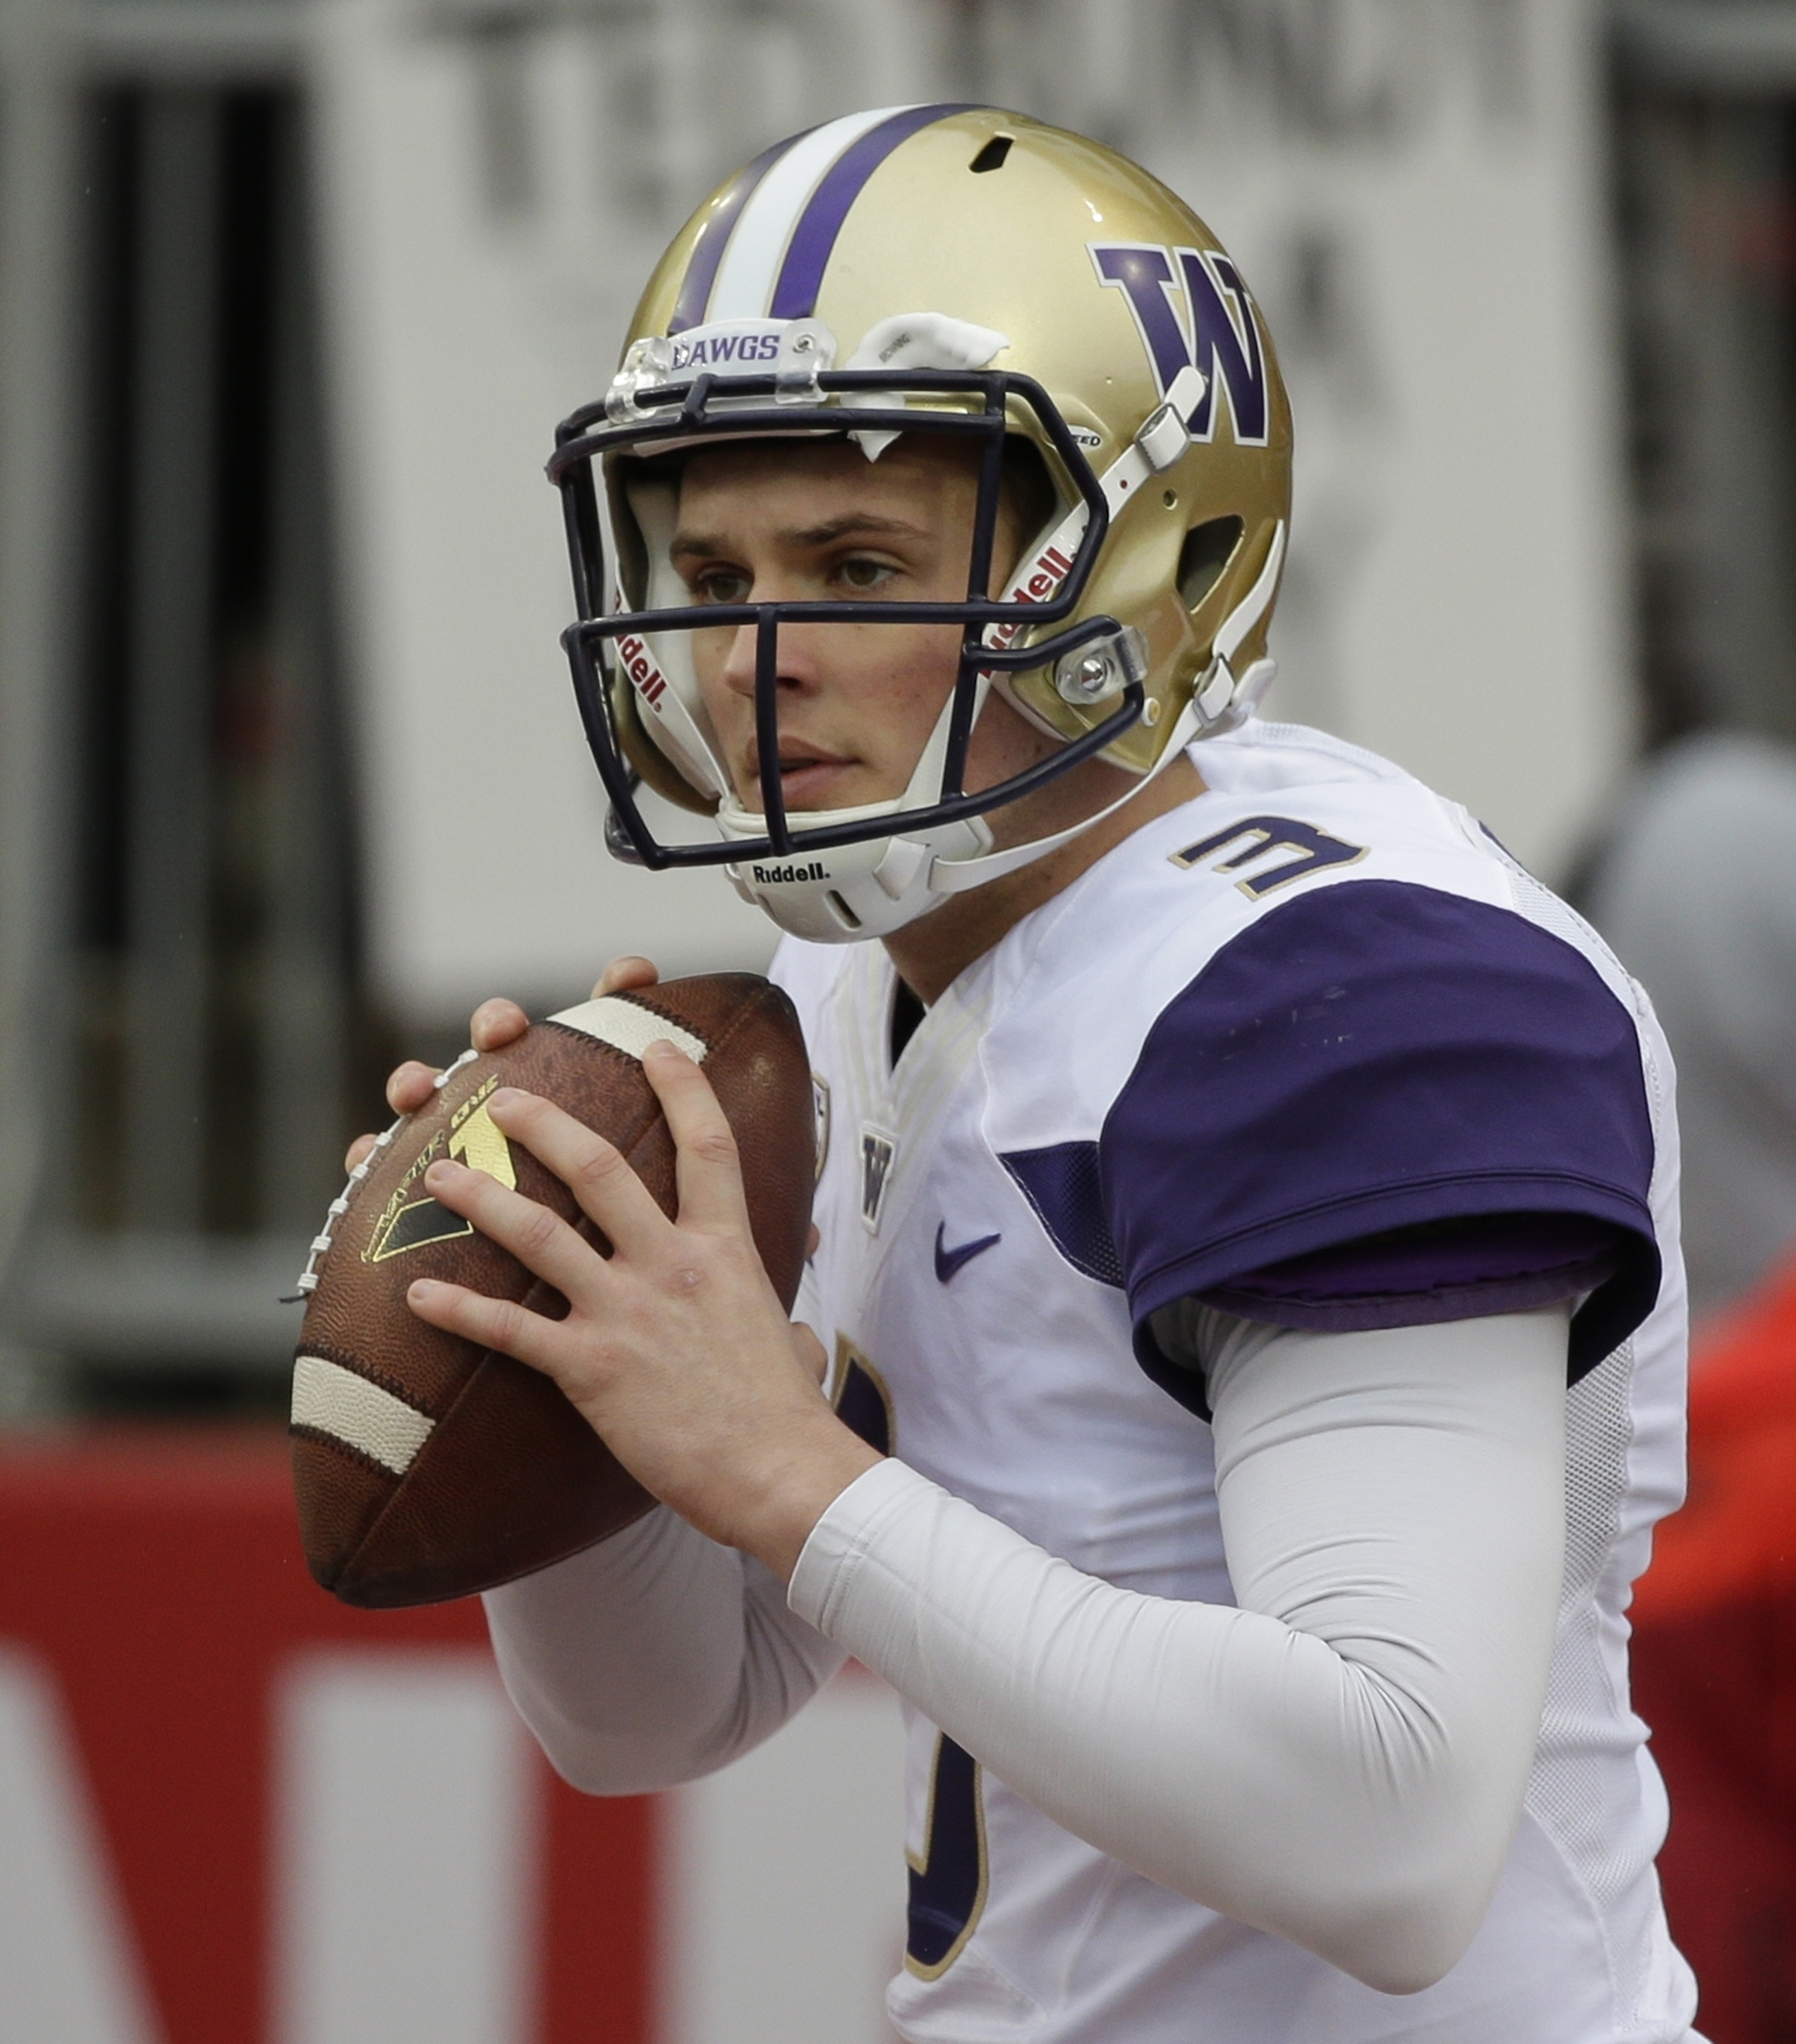 FILE - In this Nov. 25, 2016, file photo, Washington quarterback Jake Browning warms up before an NCAA college football game against Washington State, in Pullman, Wash. The fourth-ranked Huskies take on Colorado in the Pac-12 championship on Friday night